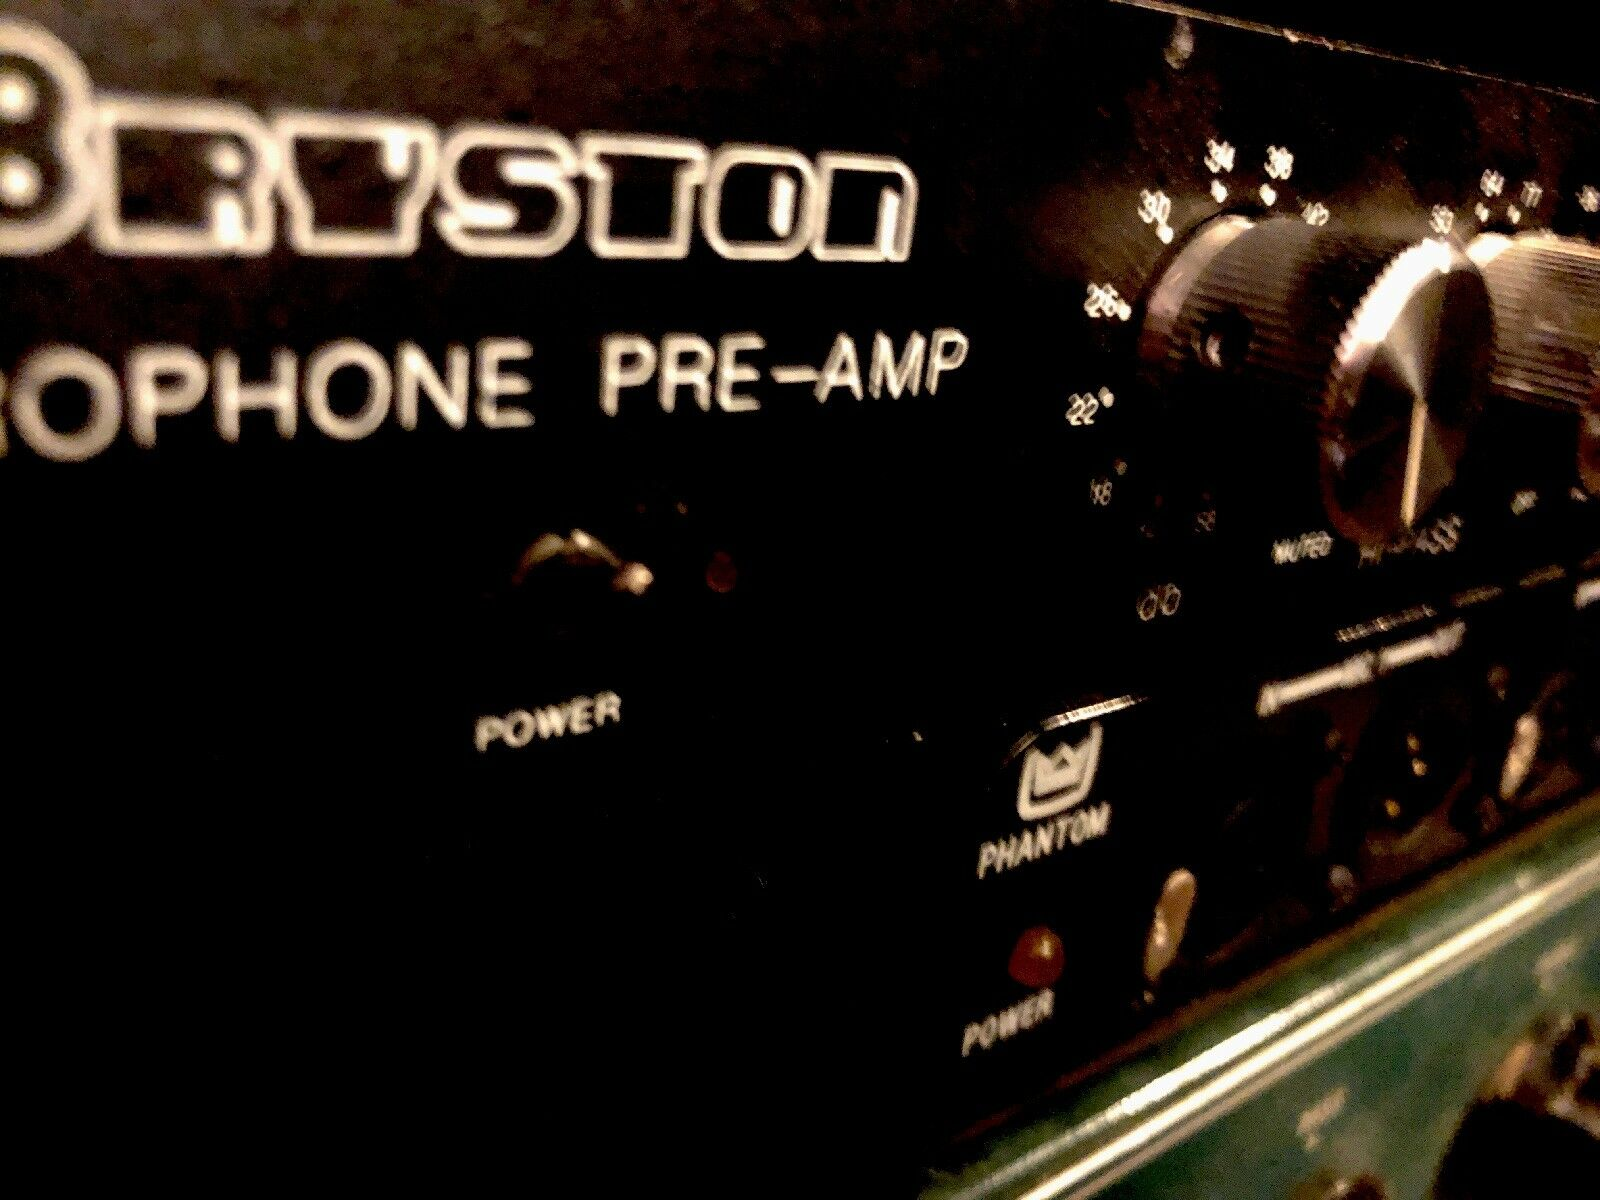 BRYSTON Stereo Pro Stereo MIC preamp